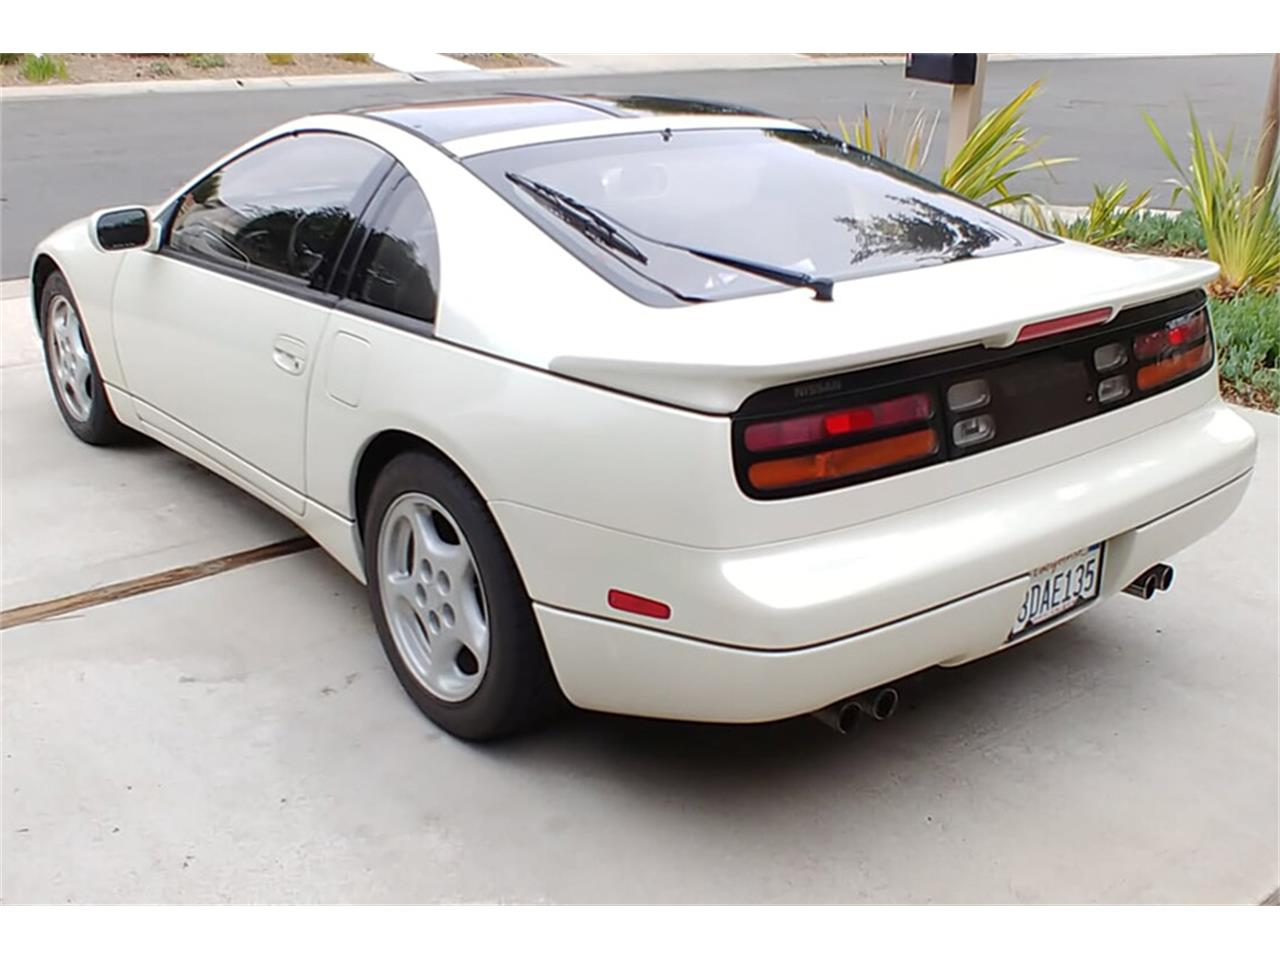 1990 Nissan 300ZX (CC-1334655) for sale in SAN DIEGO, California